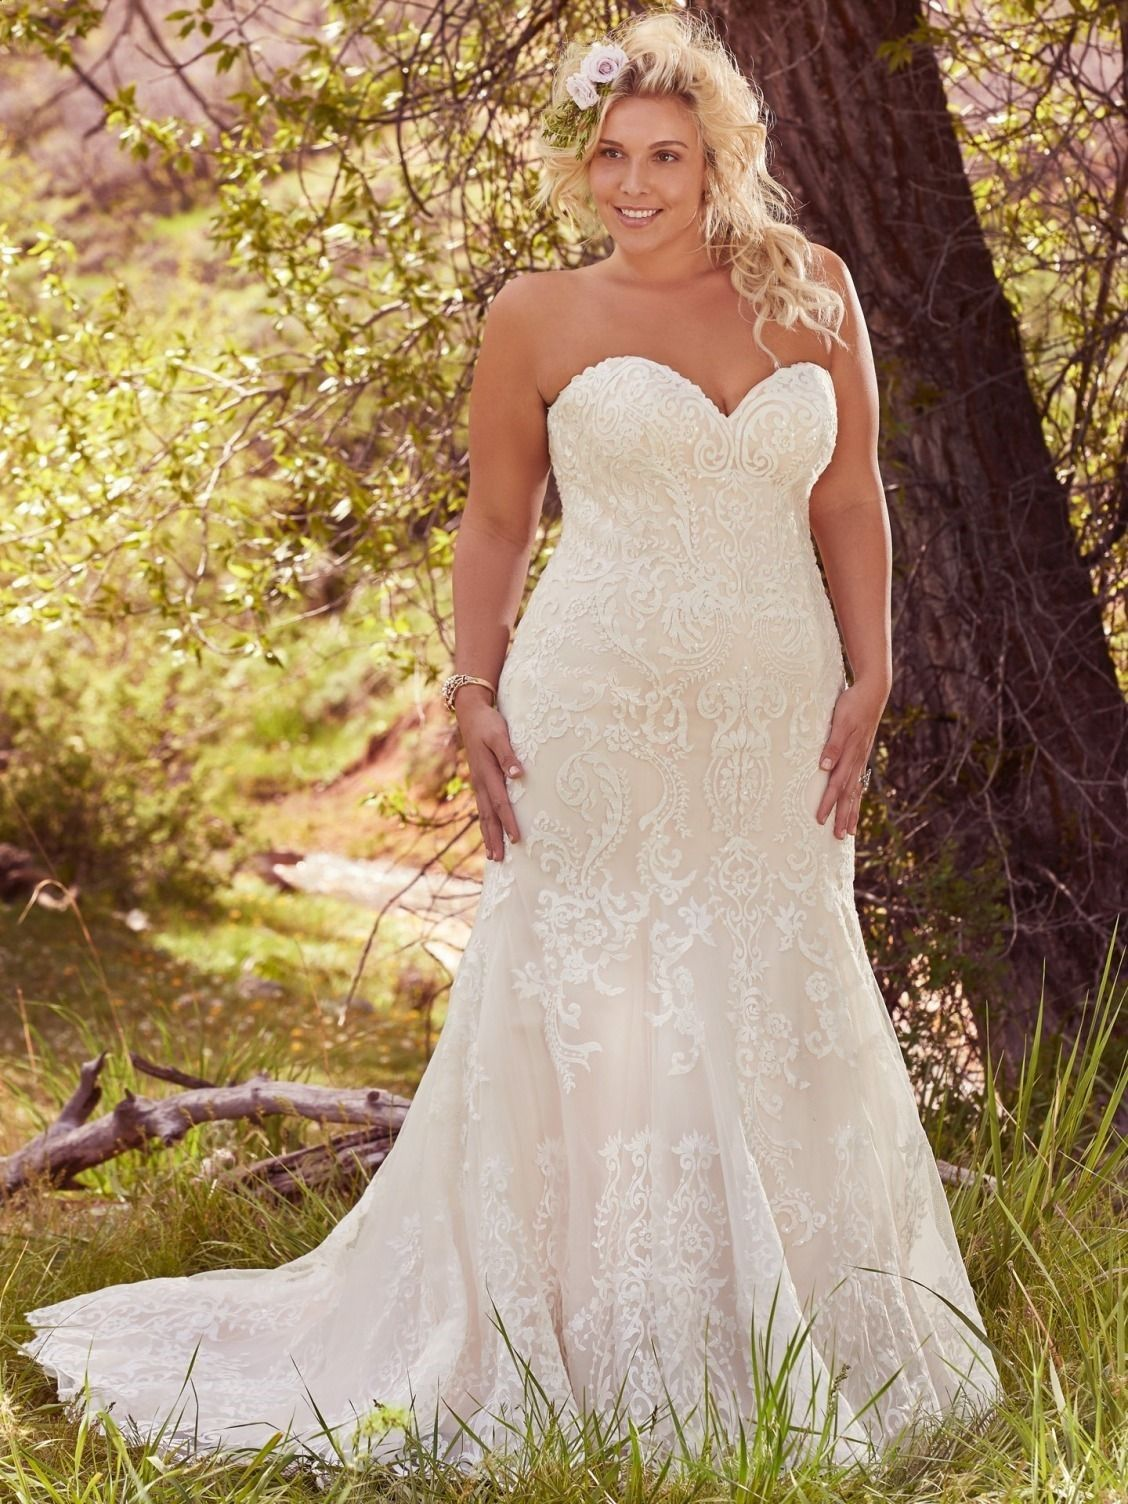 Best Plus Size Wedding Dresses - Ficts